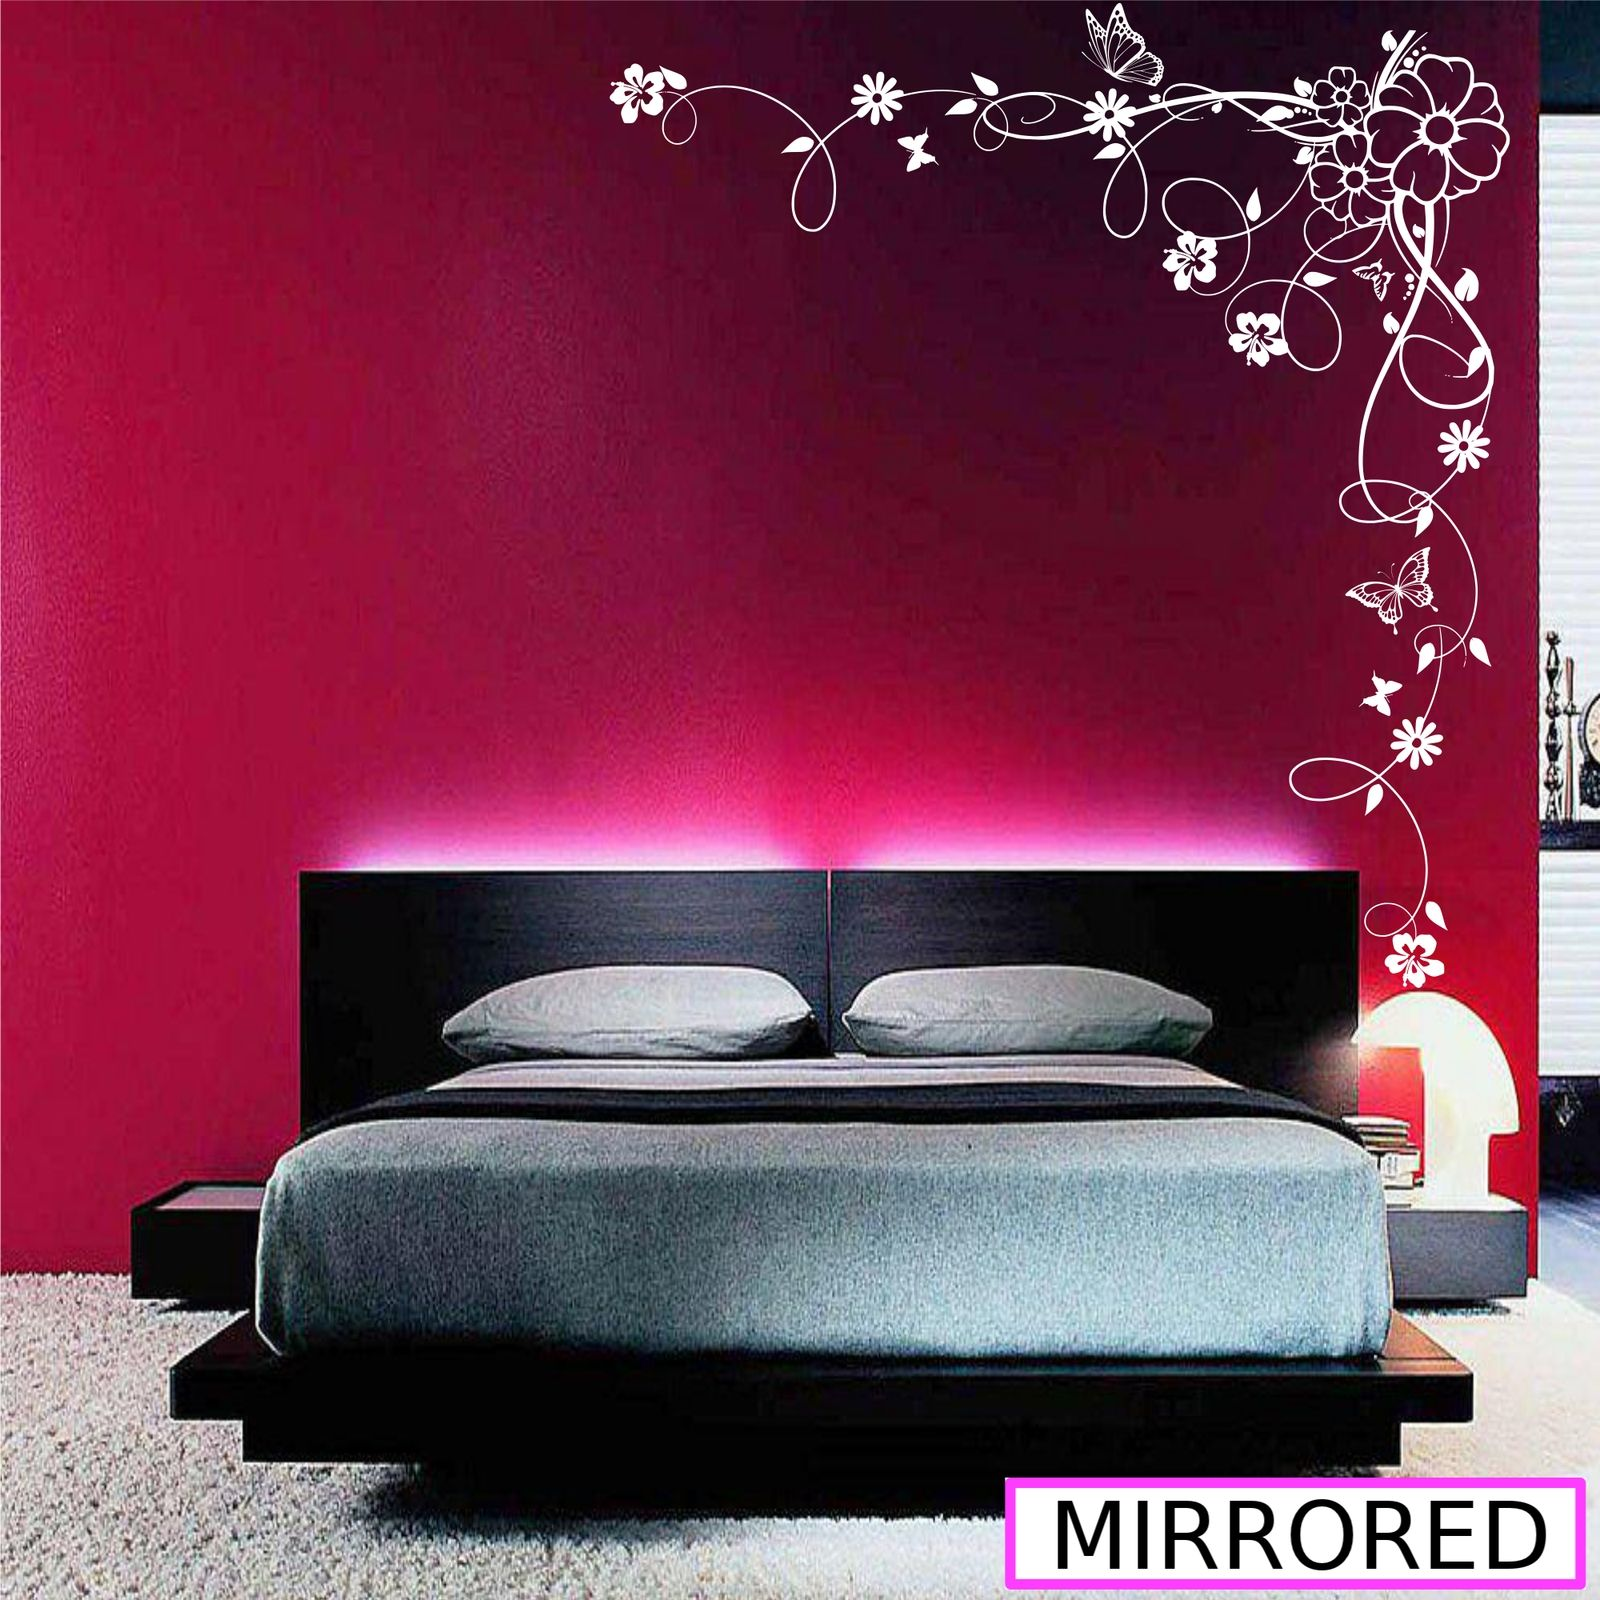 90 X 22 Large Vine Butterfly Wall Decals Removable: Corner Flower Vine Hibiscus Wall Art Sticker Vinyl